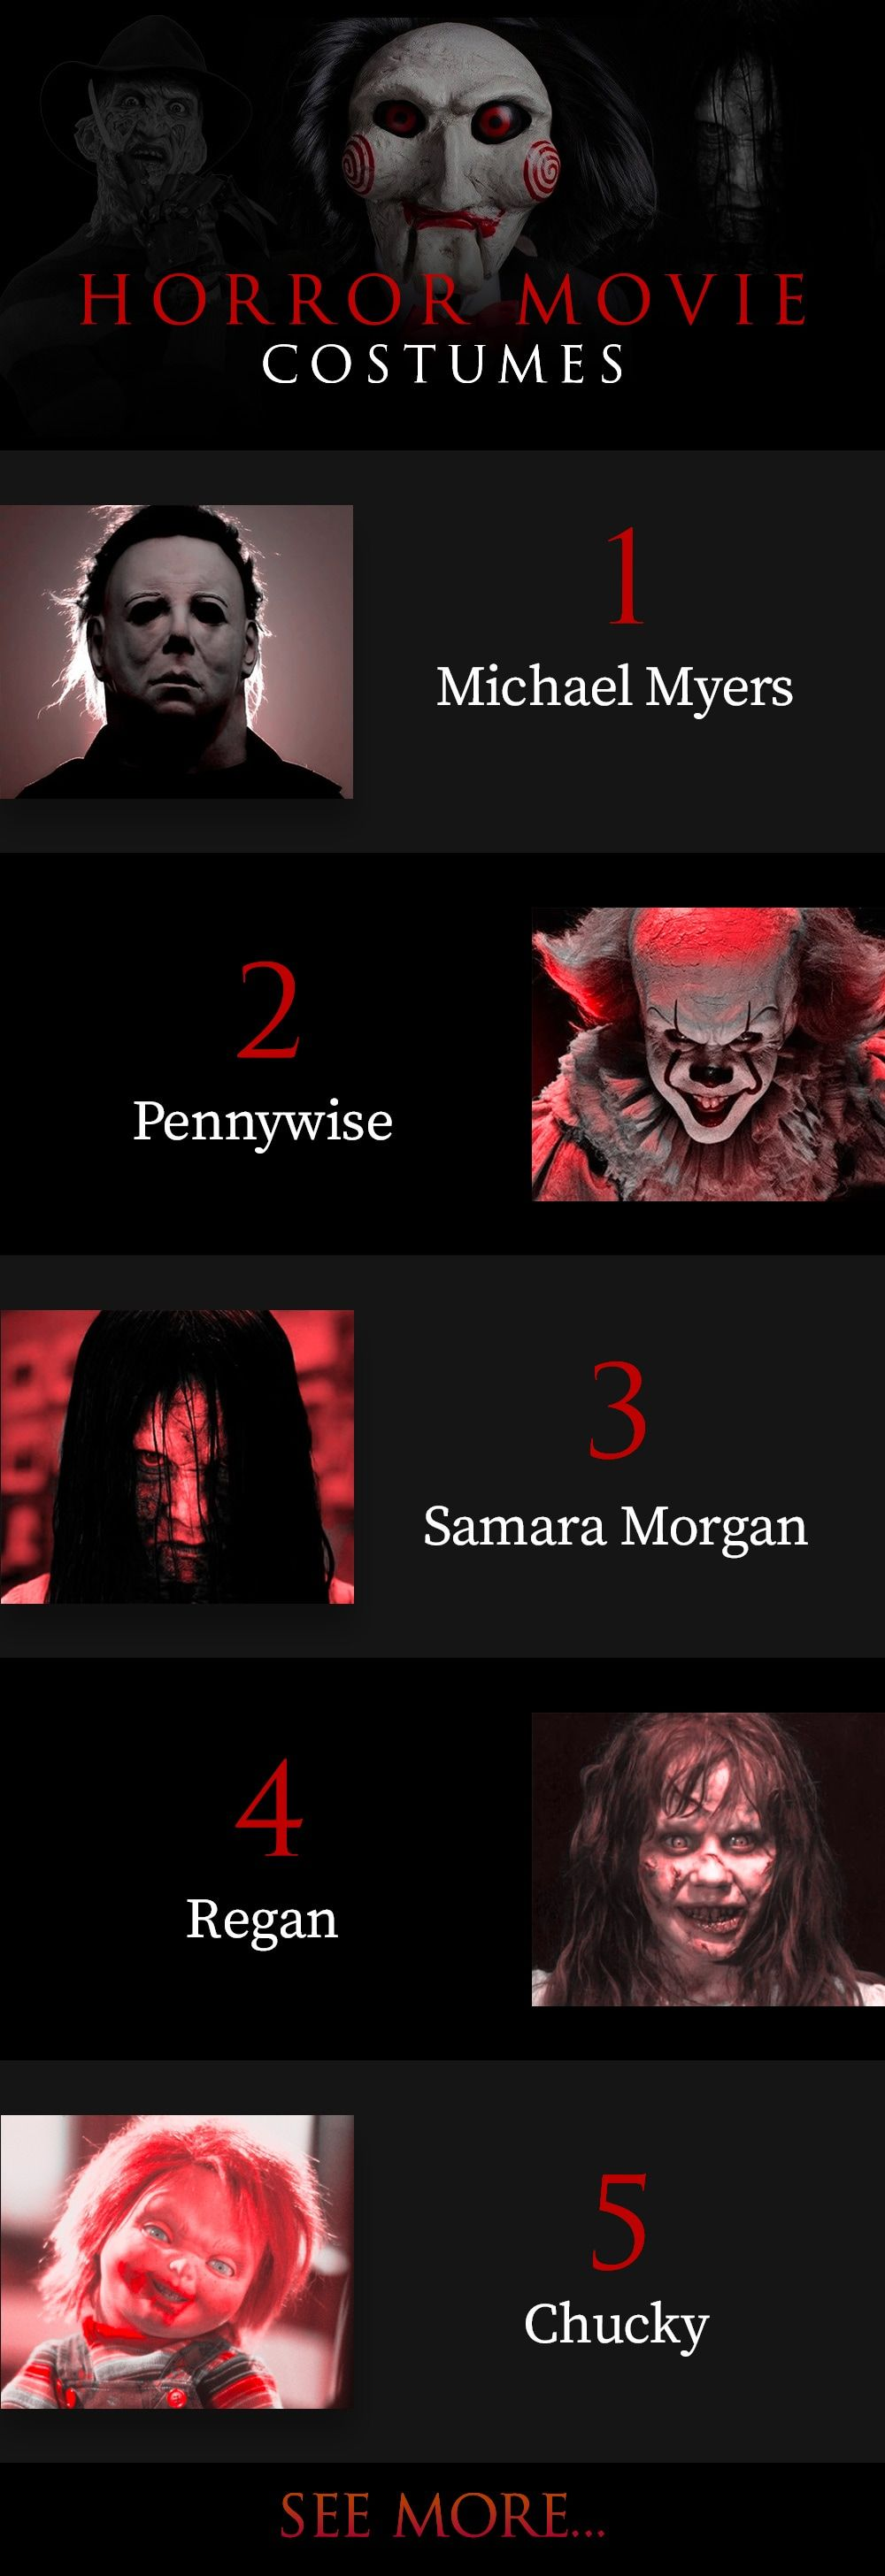 2020 M9vies As Halloween Costumes Best Scary Horror Movie Costumes in 2020 | Horror movie costumes